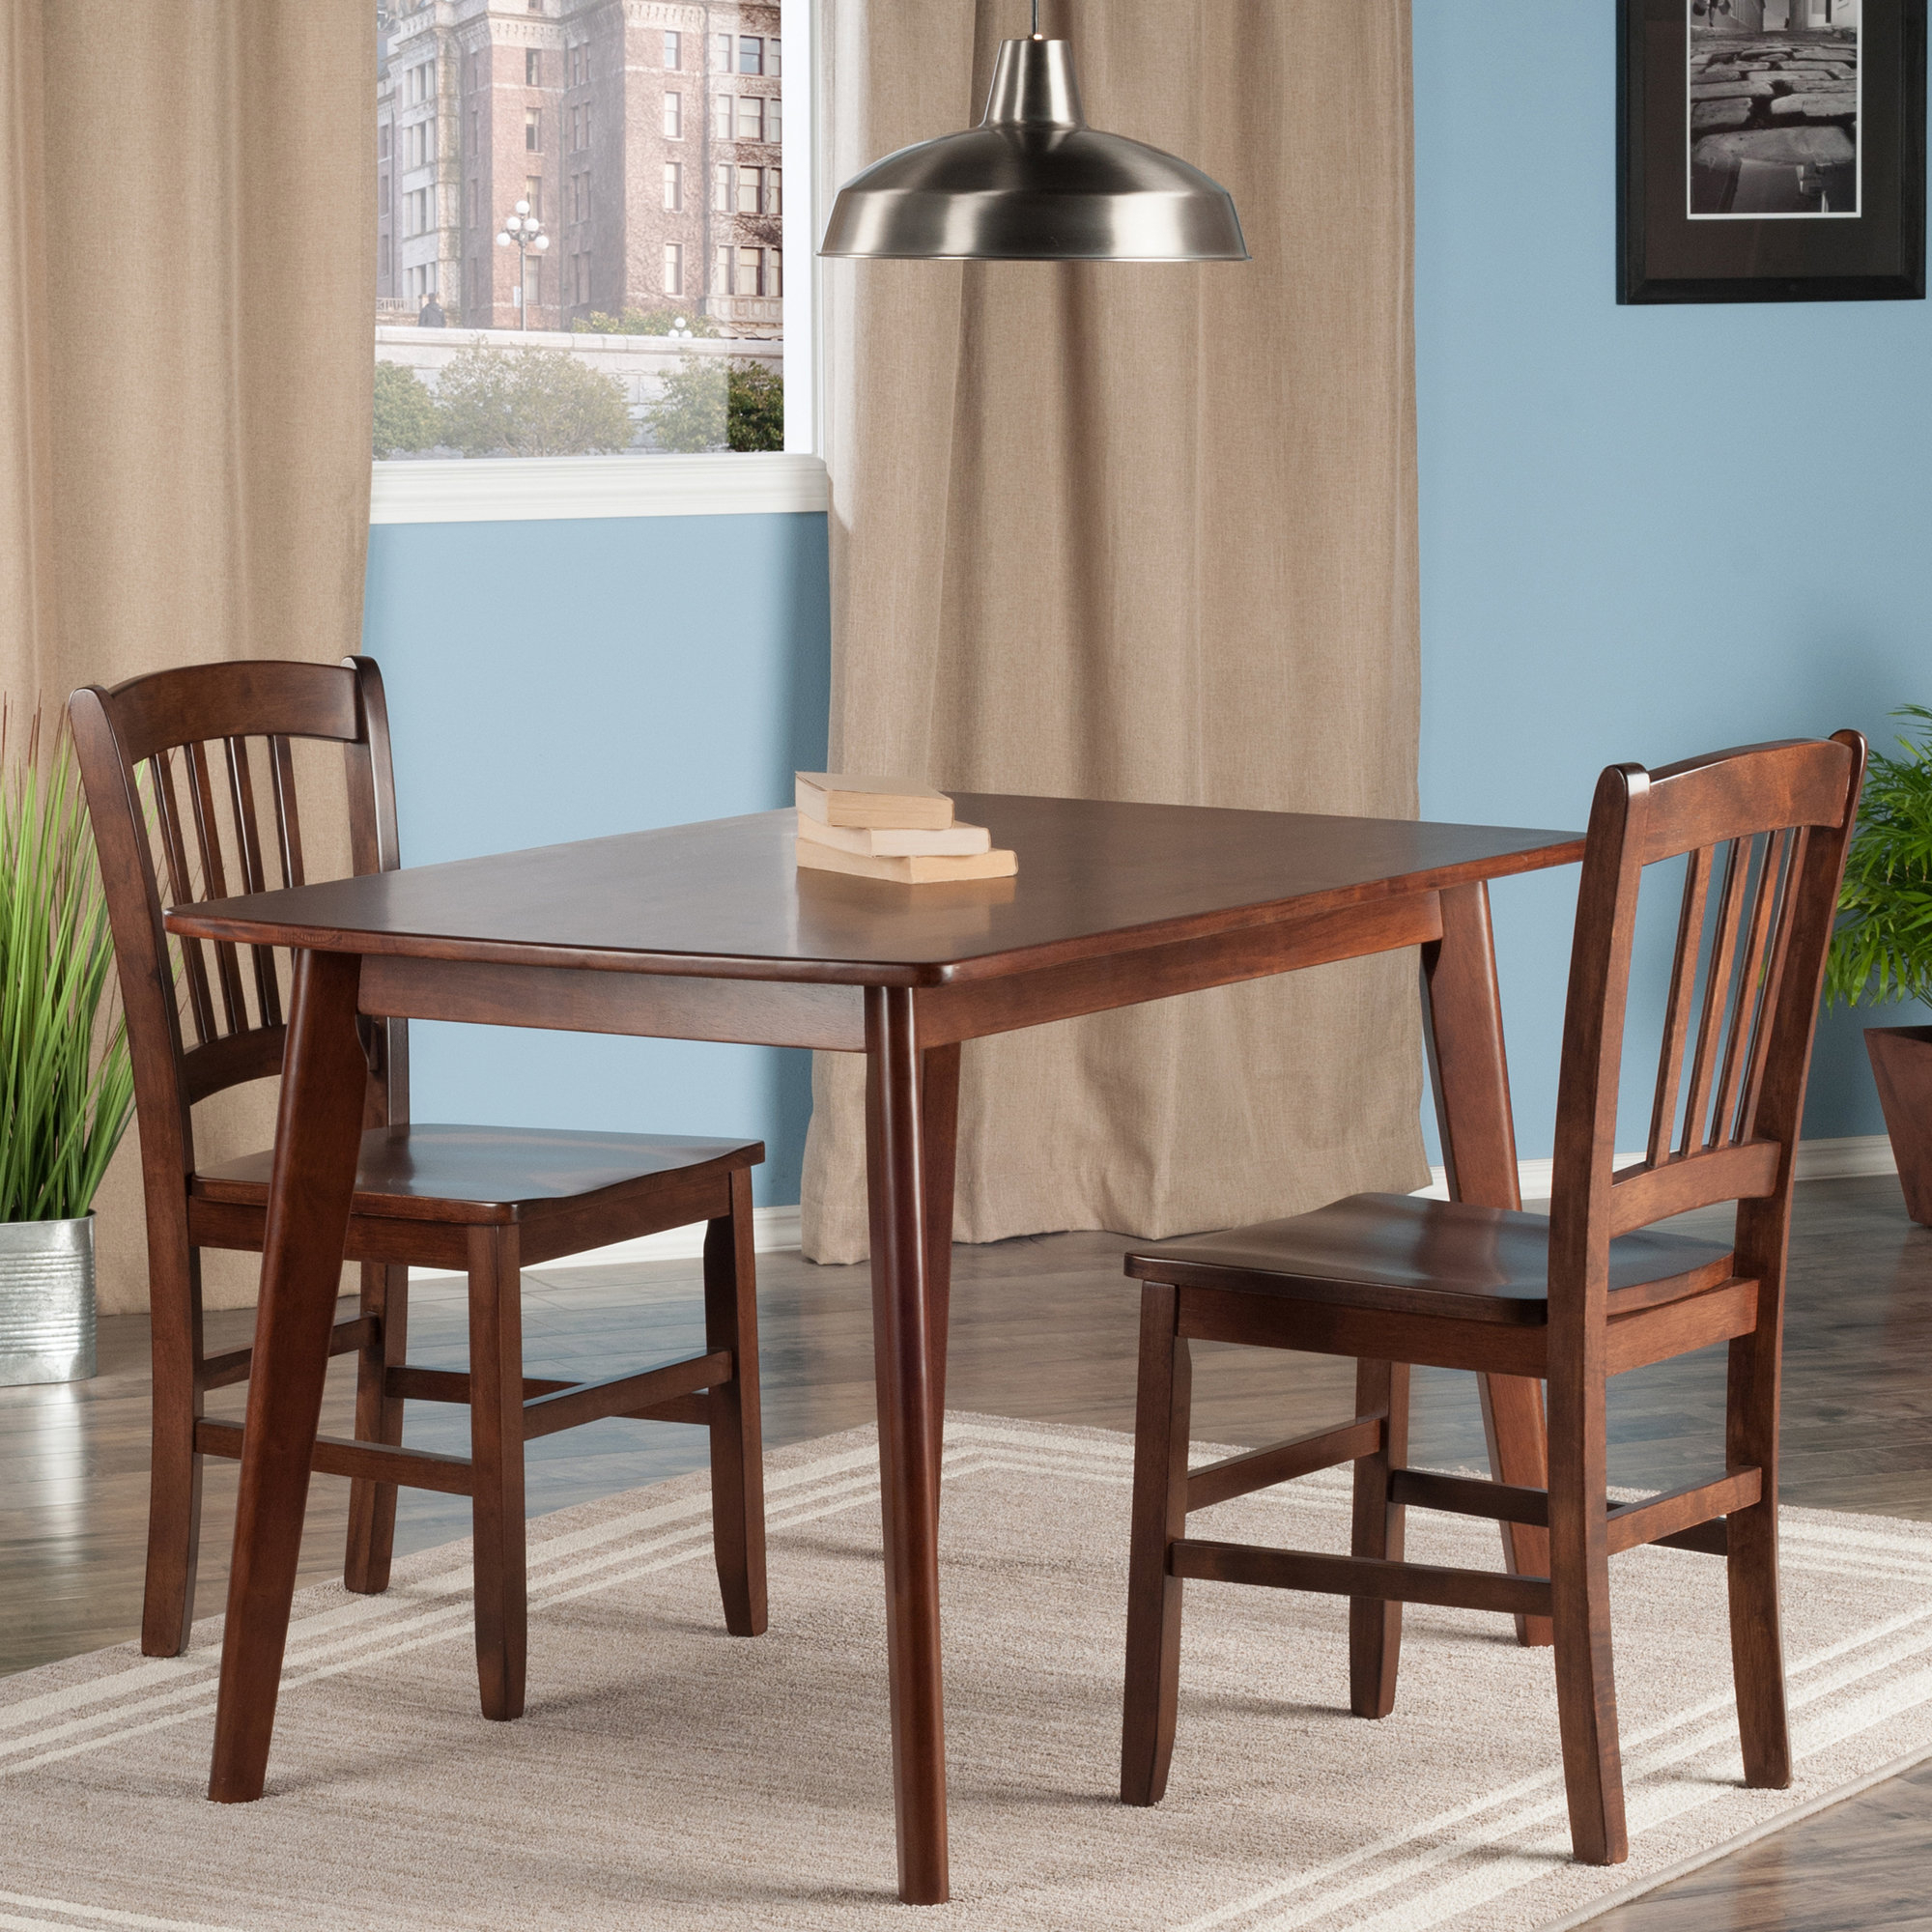 Inspiration about Well Known Winston Porter Guynn 3 Piece Solid Wood Dining Set Wnst1156 Within Yedinak 5 Piece Solid Wood Dining Sets (#8 of 20)